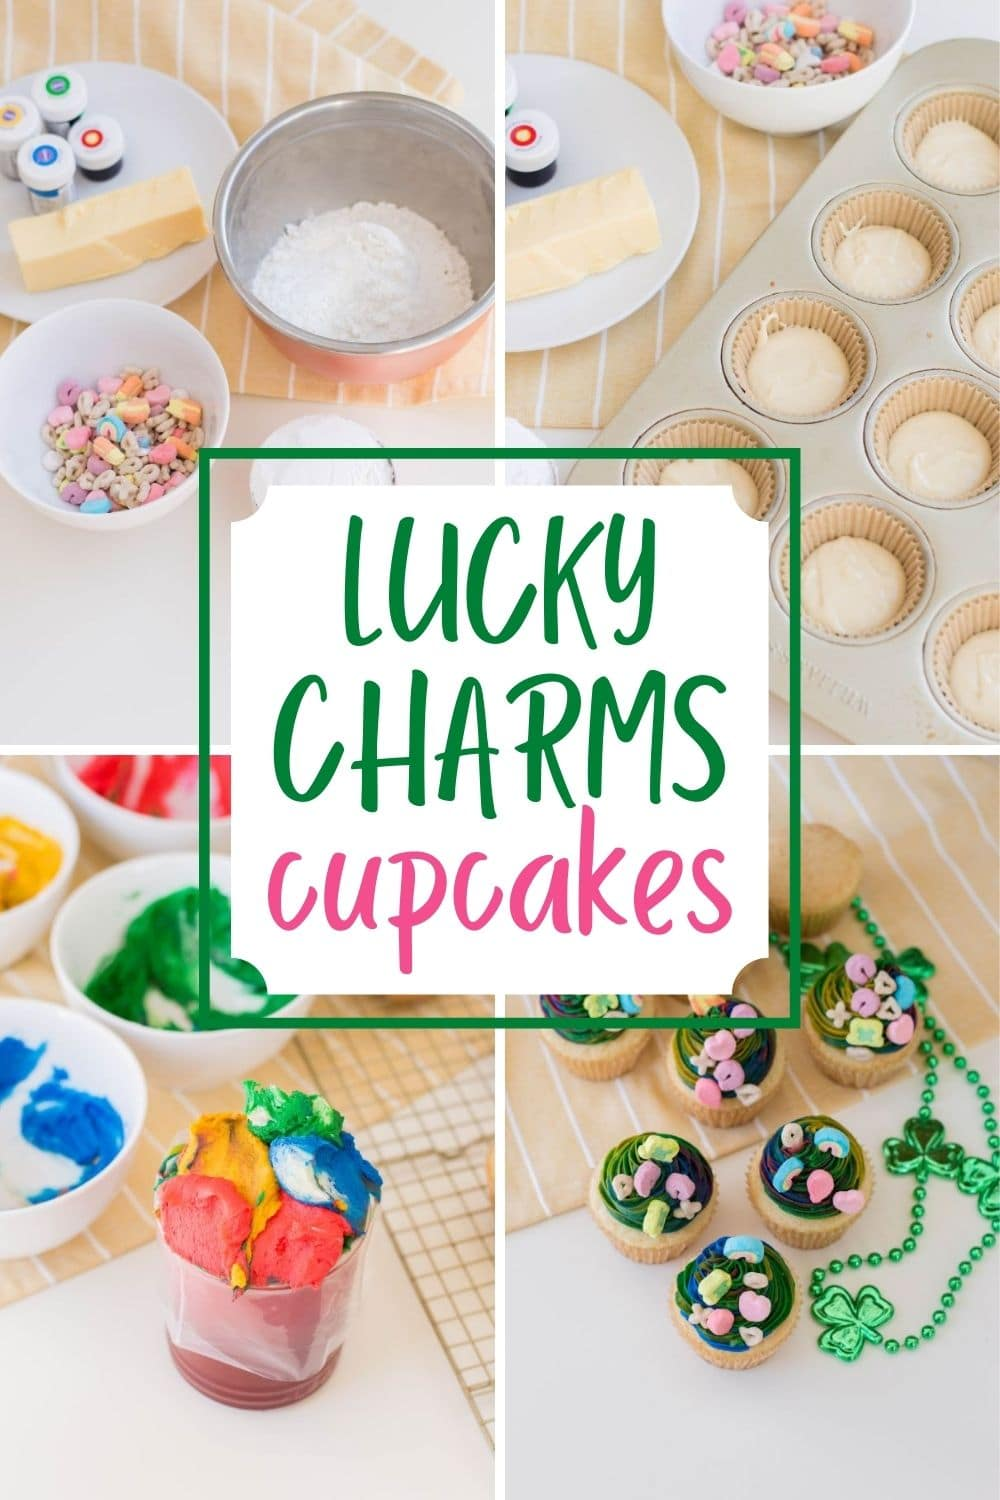 These Lucky Charms Cupcakes are perfect for any occasion and are a fantastic treat to celebrate St. Patrick's Day. They can be made for class parties, family get-togethers or even a birthday party. #stpatricksday #luckycharms #cupcakes #birthday via @wondermomwannab